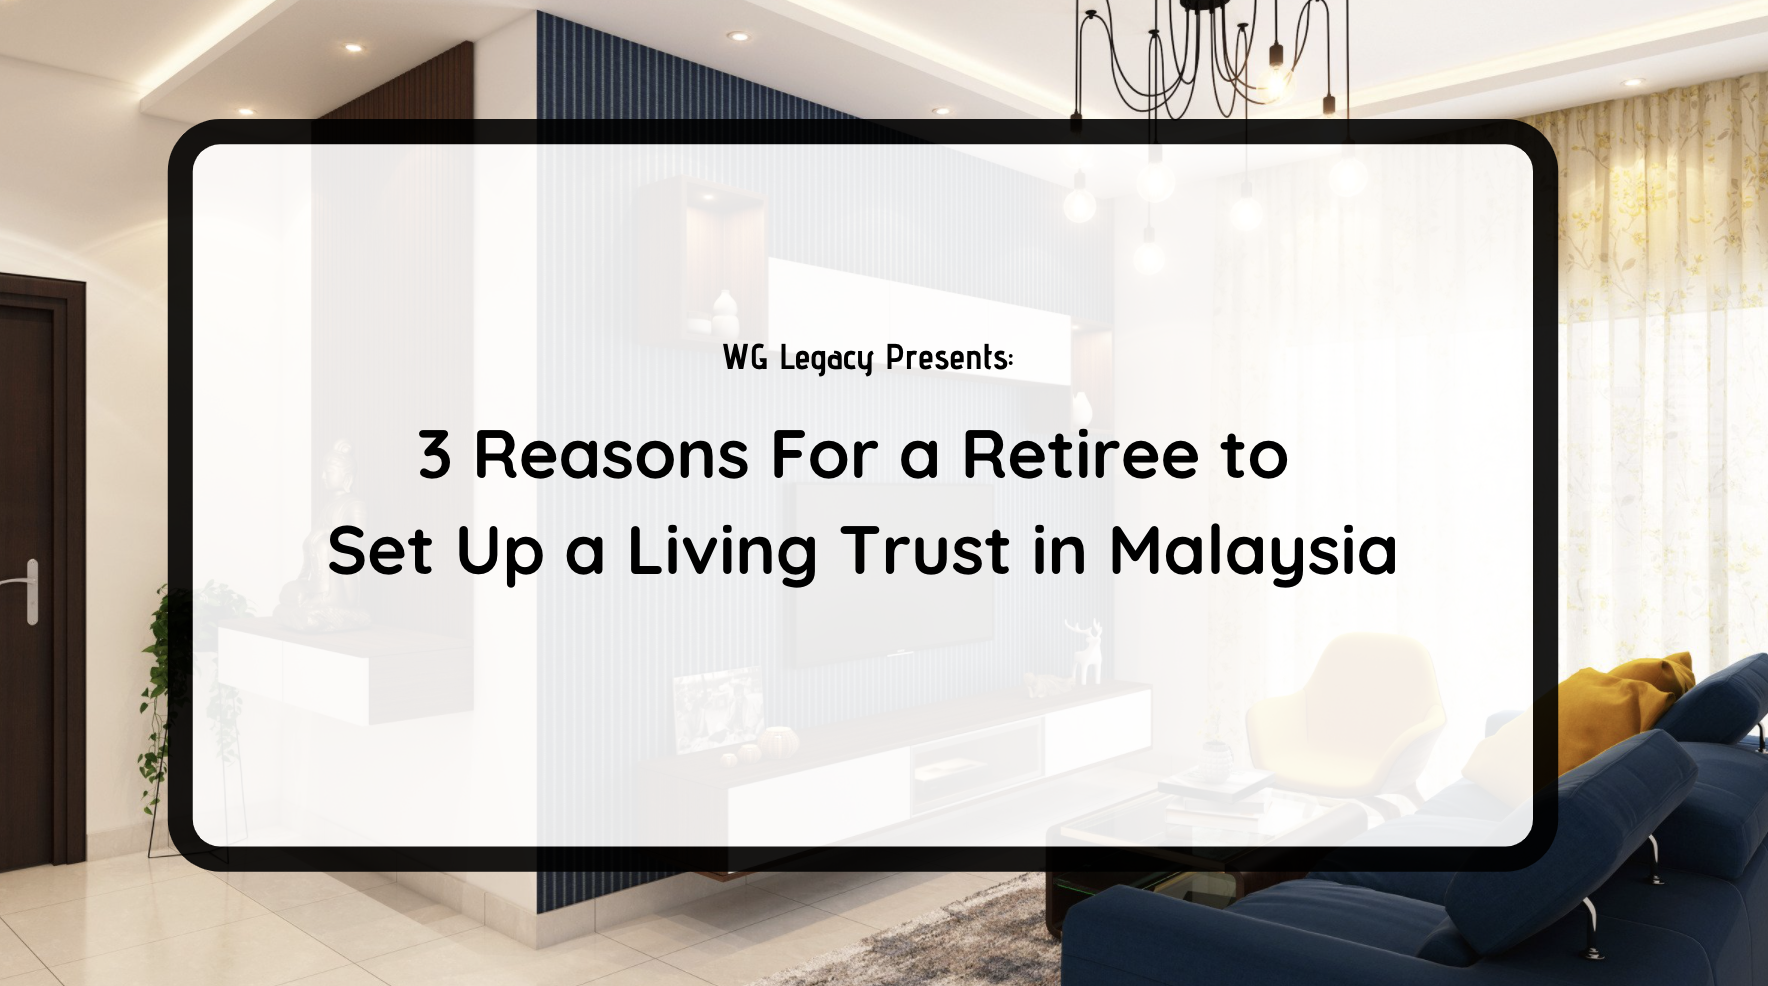 3 Reasons For a Retiree to Set Up a Living Trust in Malaysia